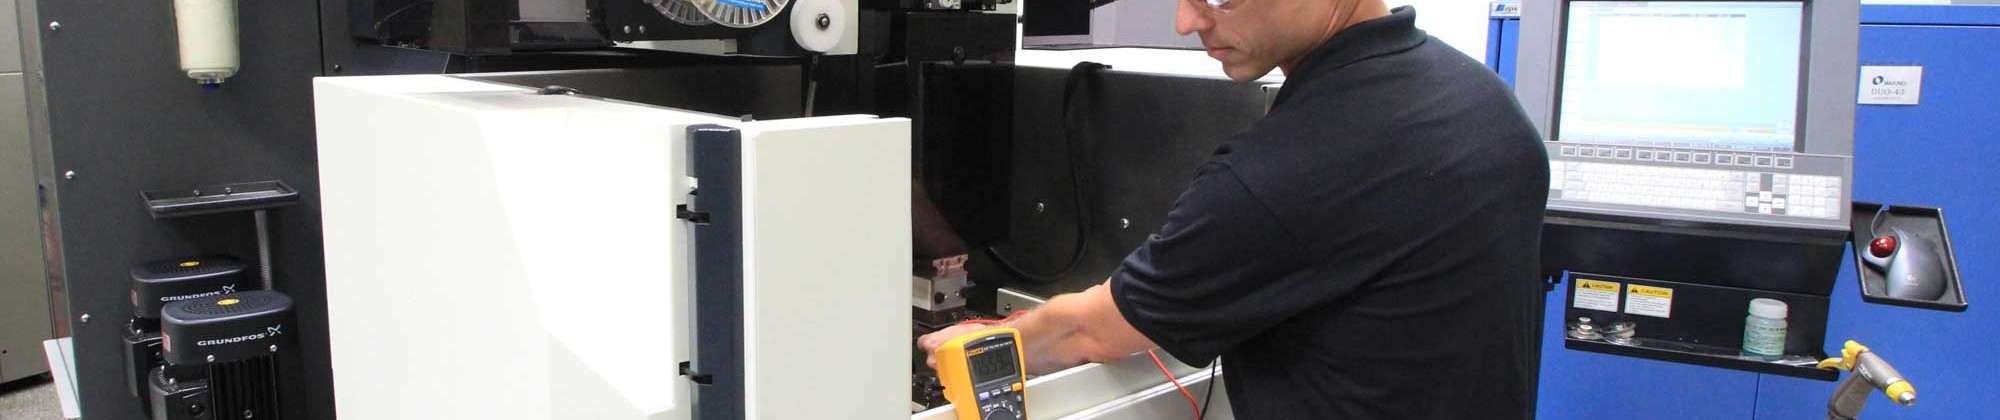 CNC Machine Tool PM | Lathe + Milling Machine Preventive Maintenance